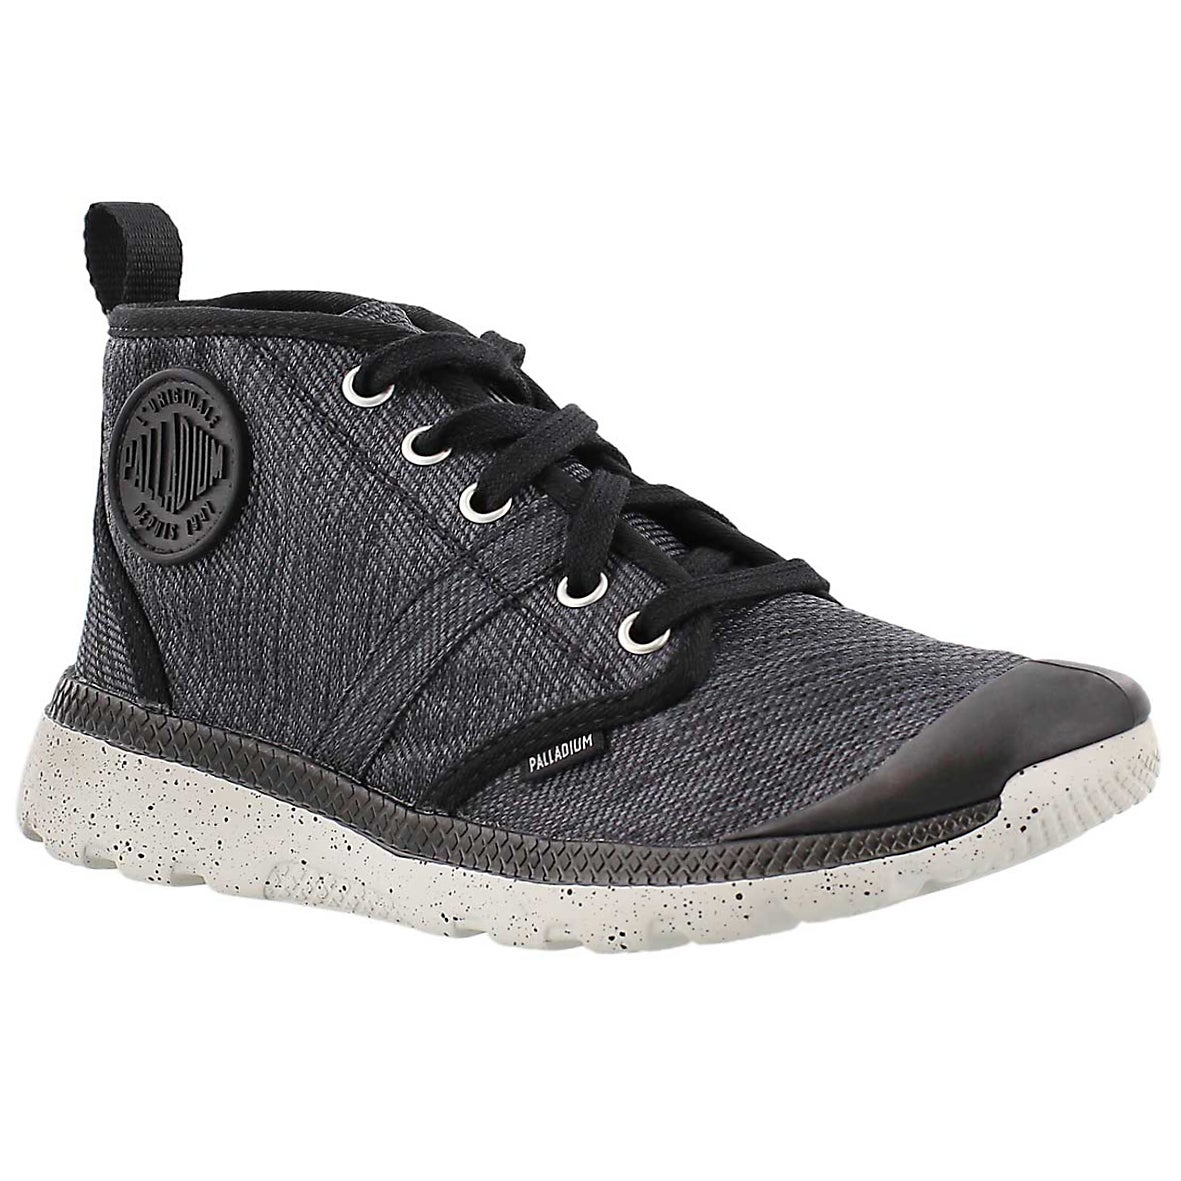 Women's PALLAVILLE HI black sneakers